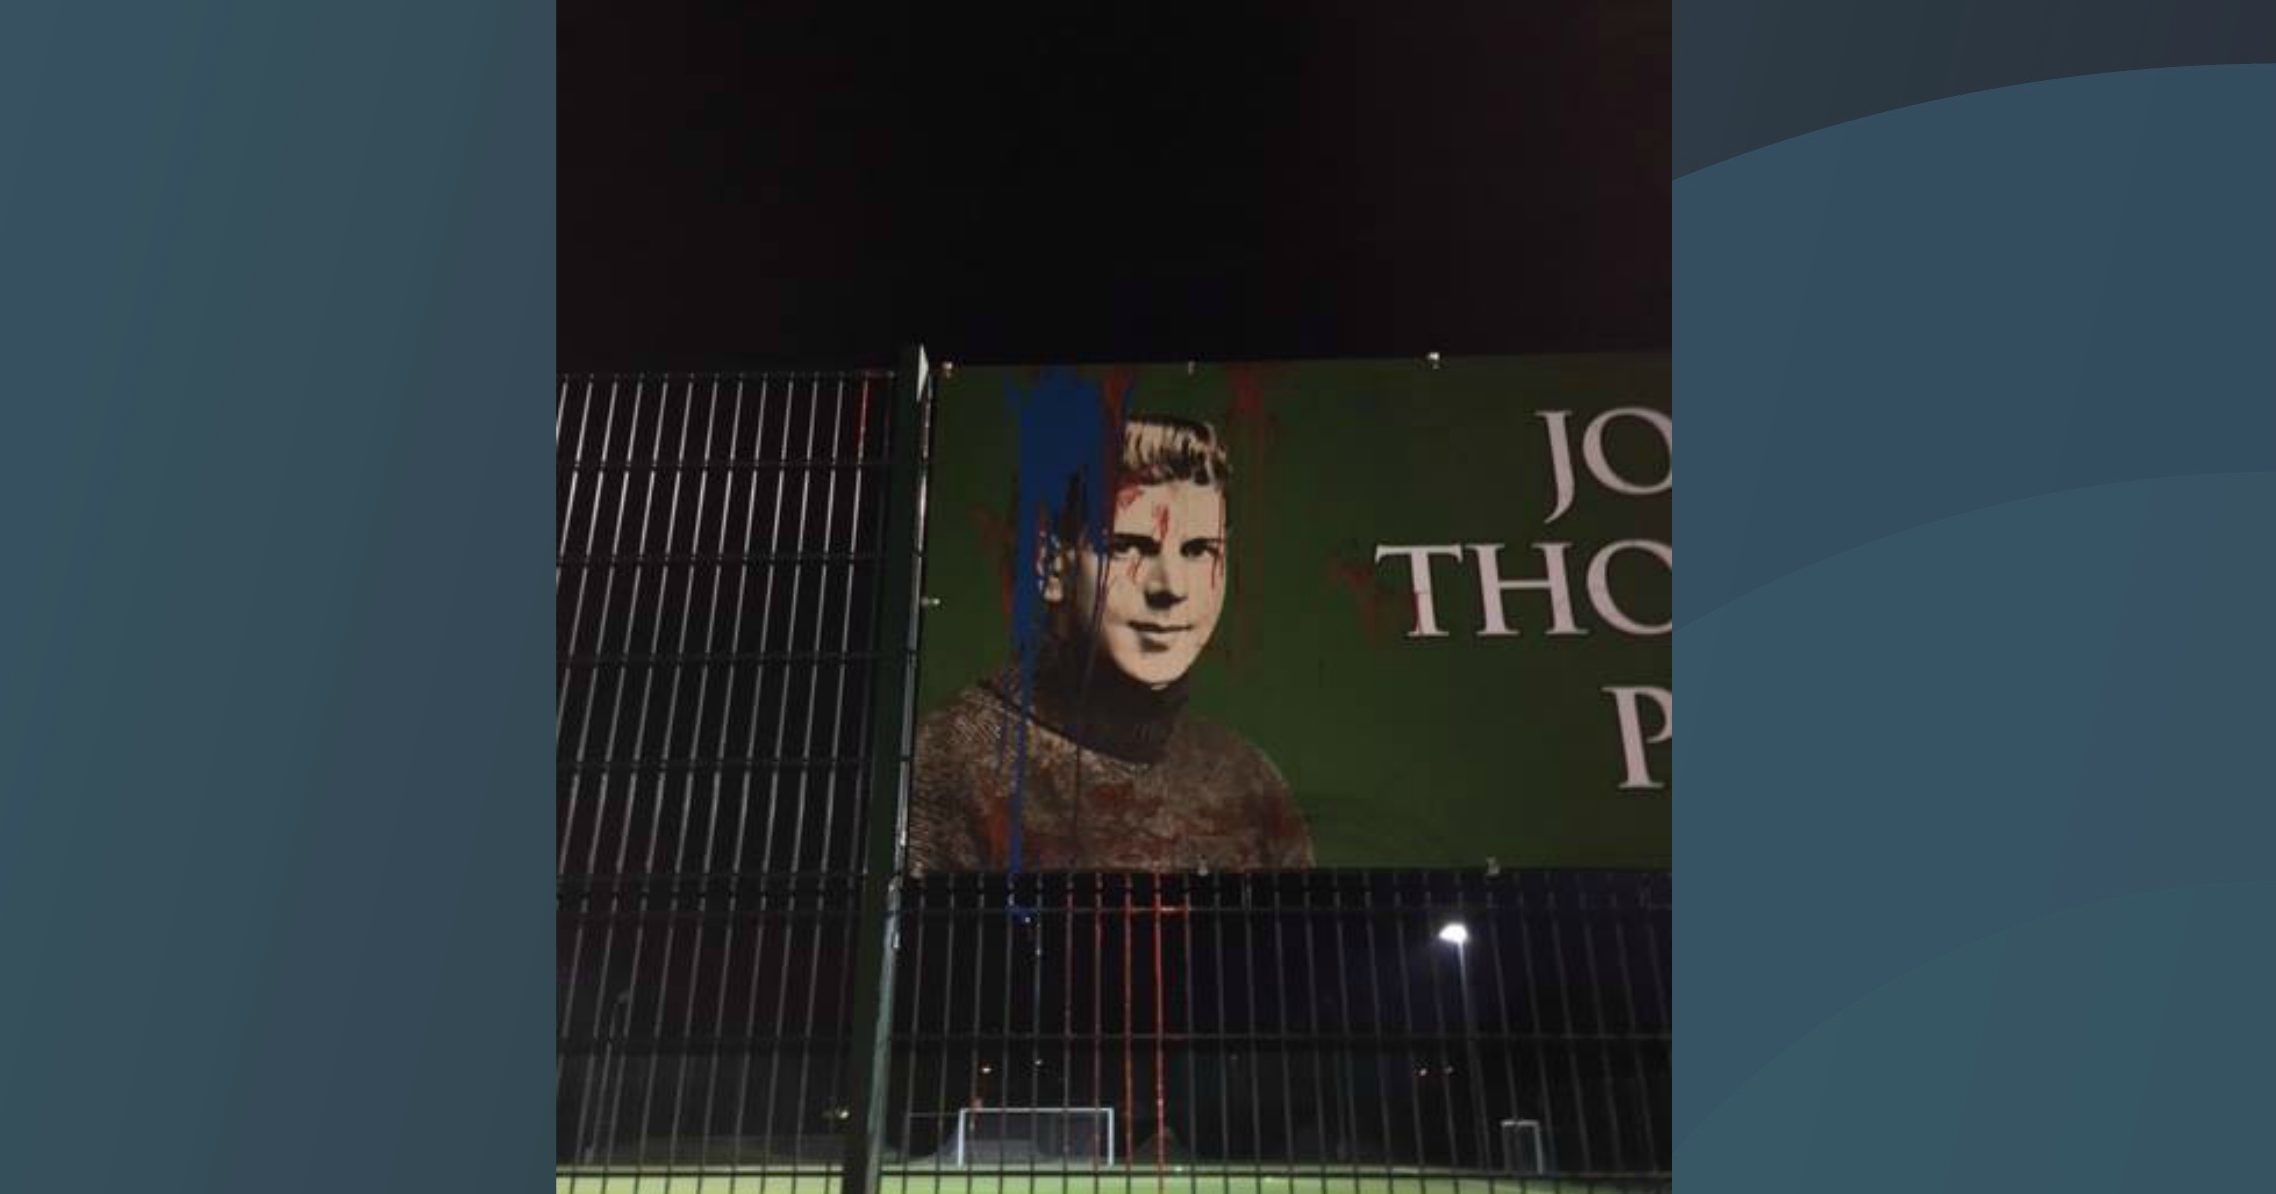 Vandals daubed blue and red paint on the pitch and sign